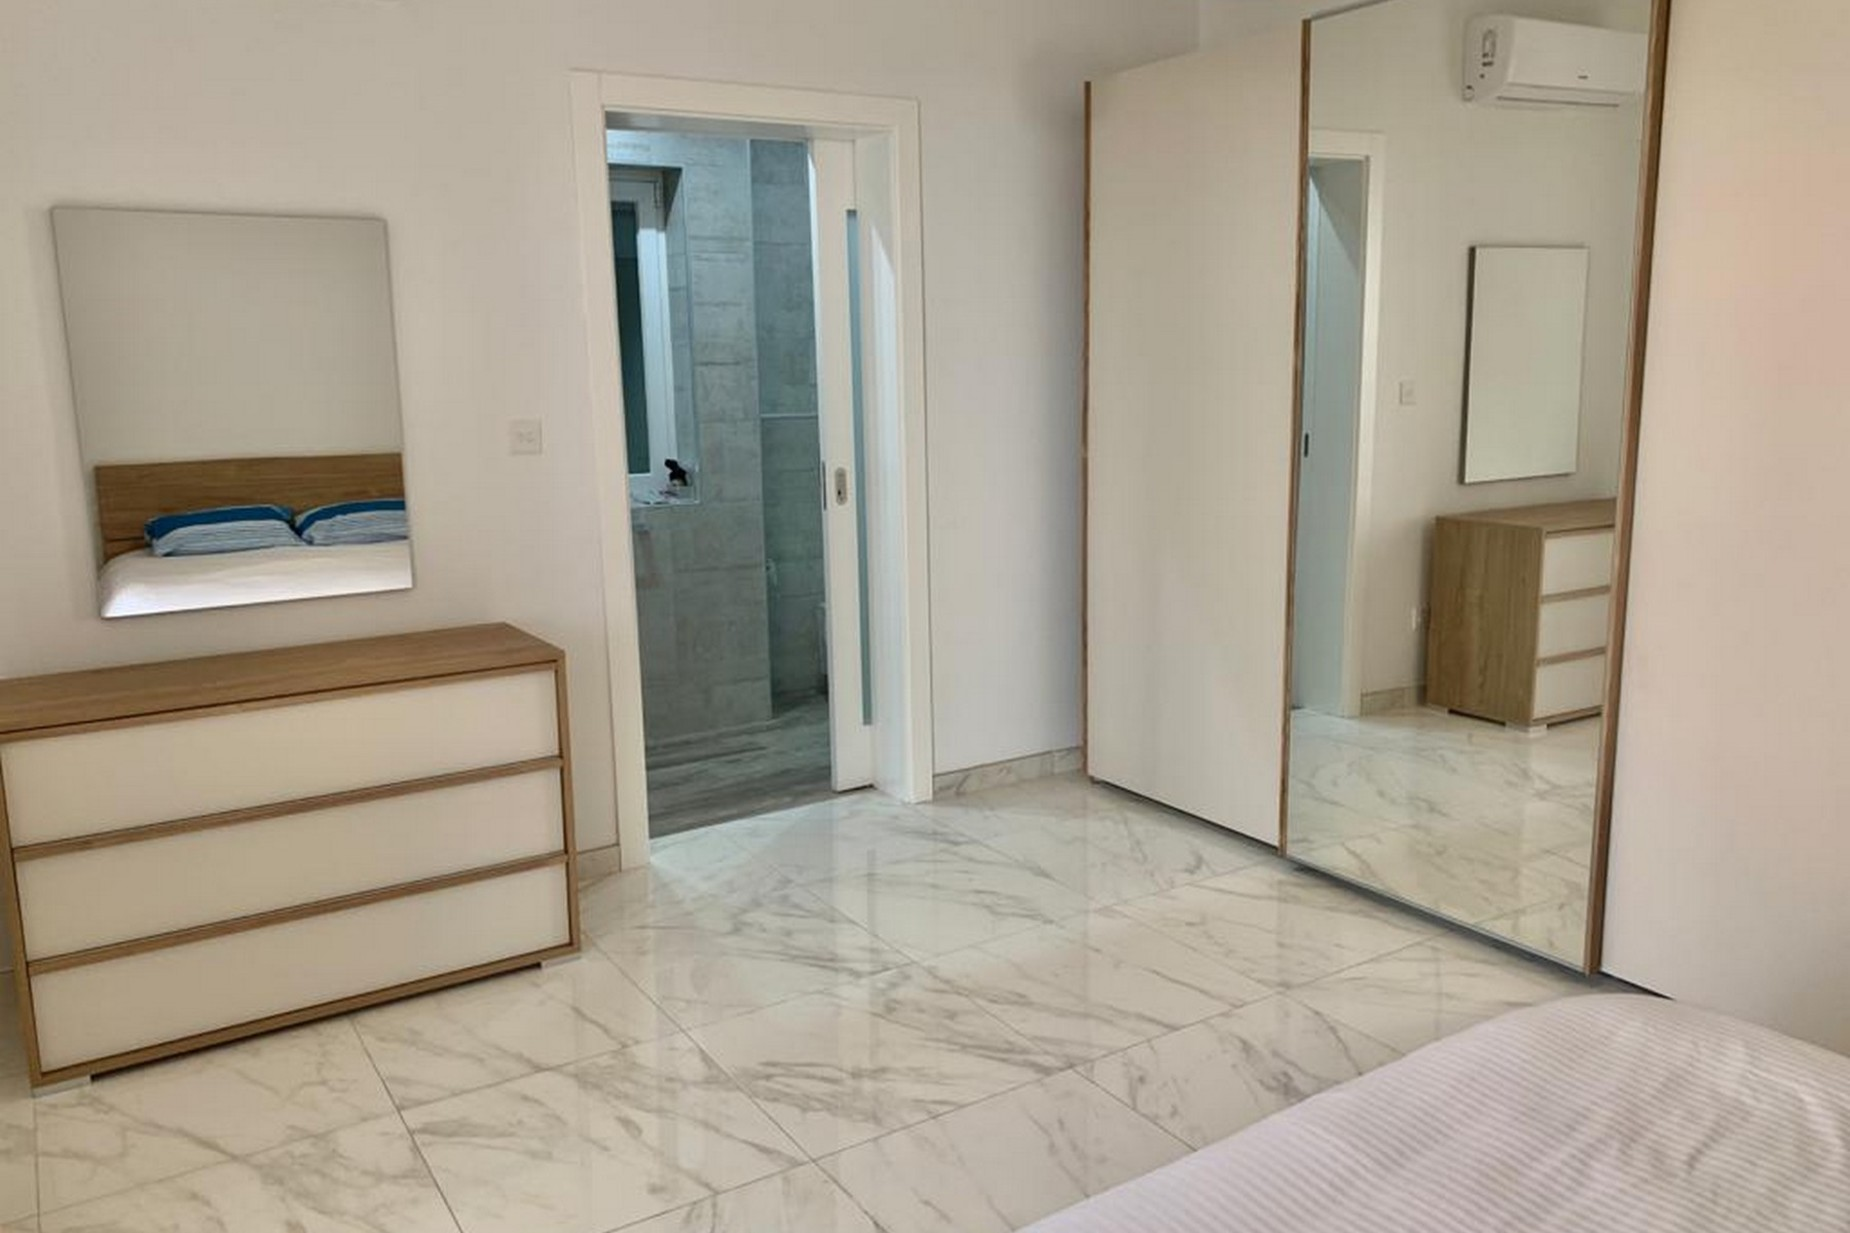 3 bed Apartment For Rent in Mellieha, Mellieha - thumb 21